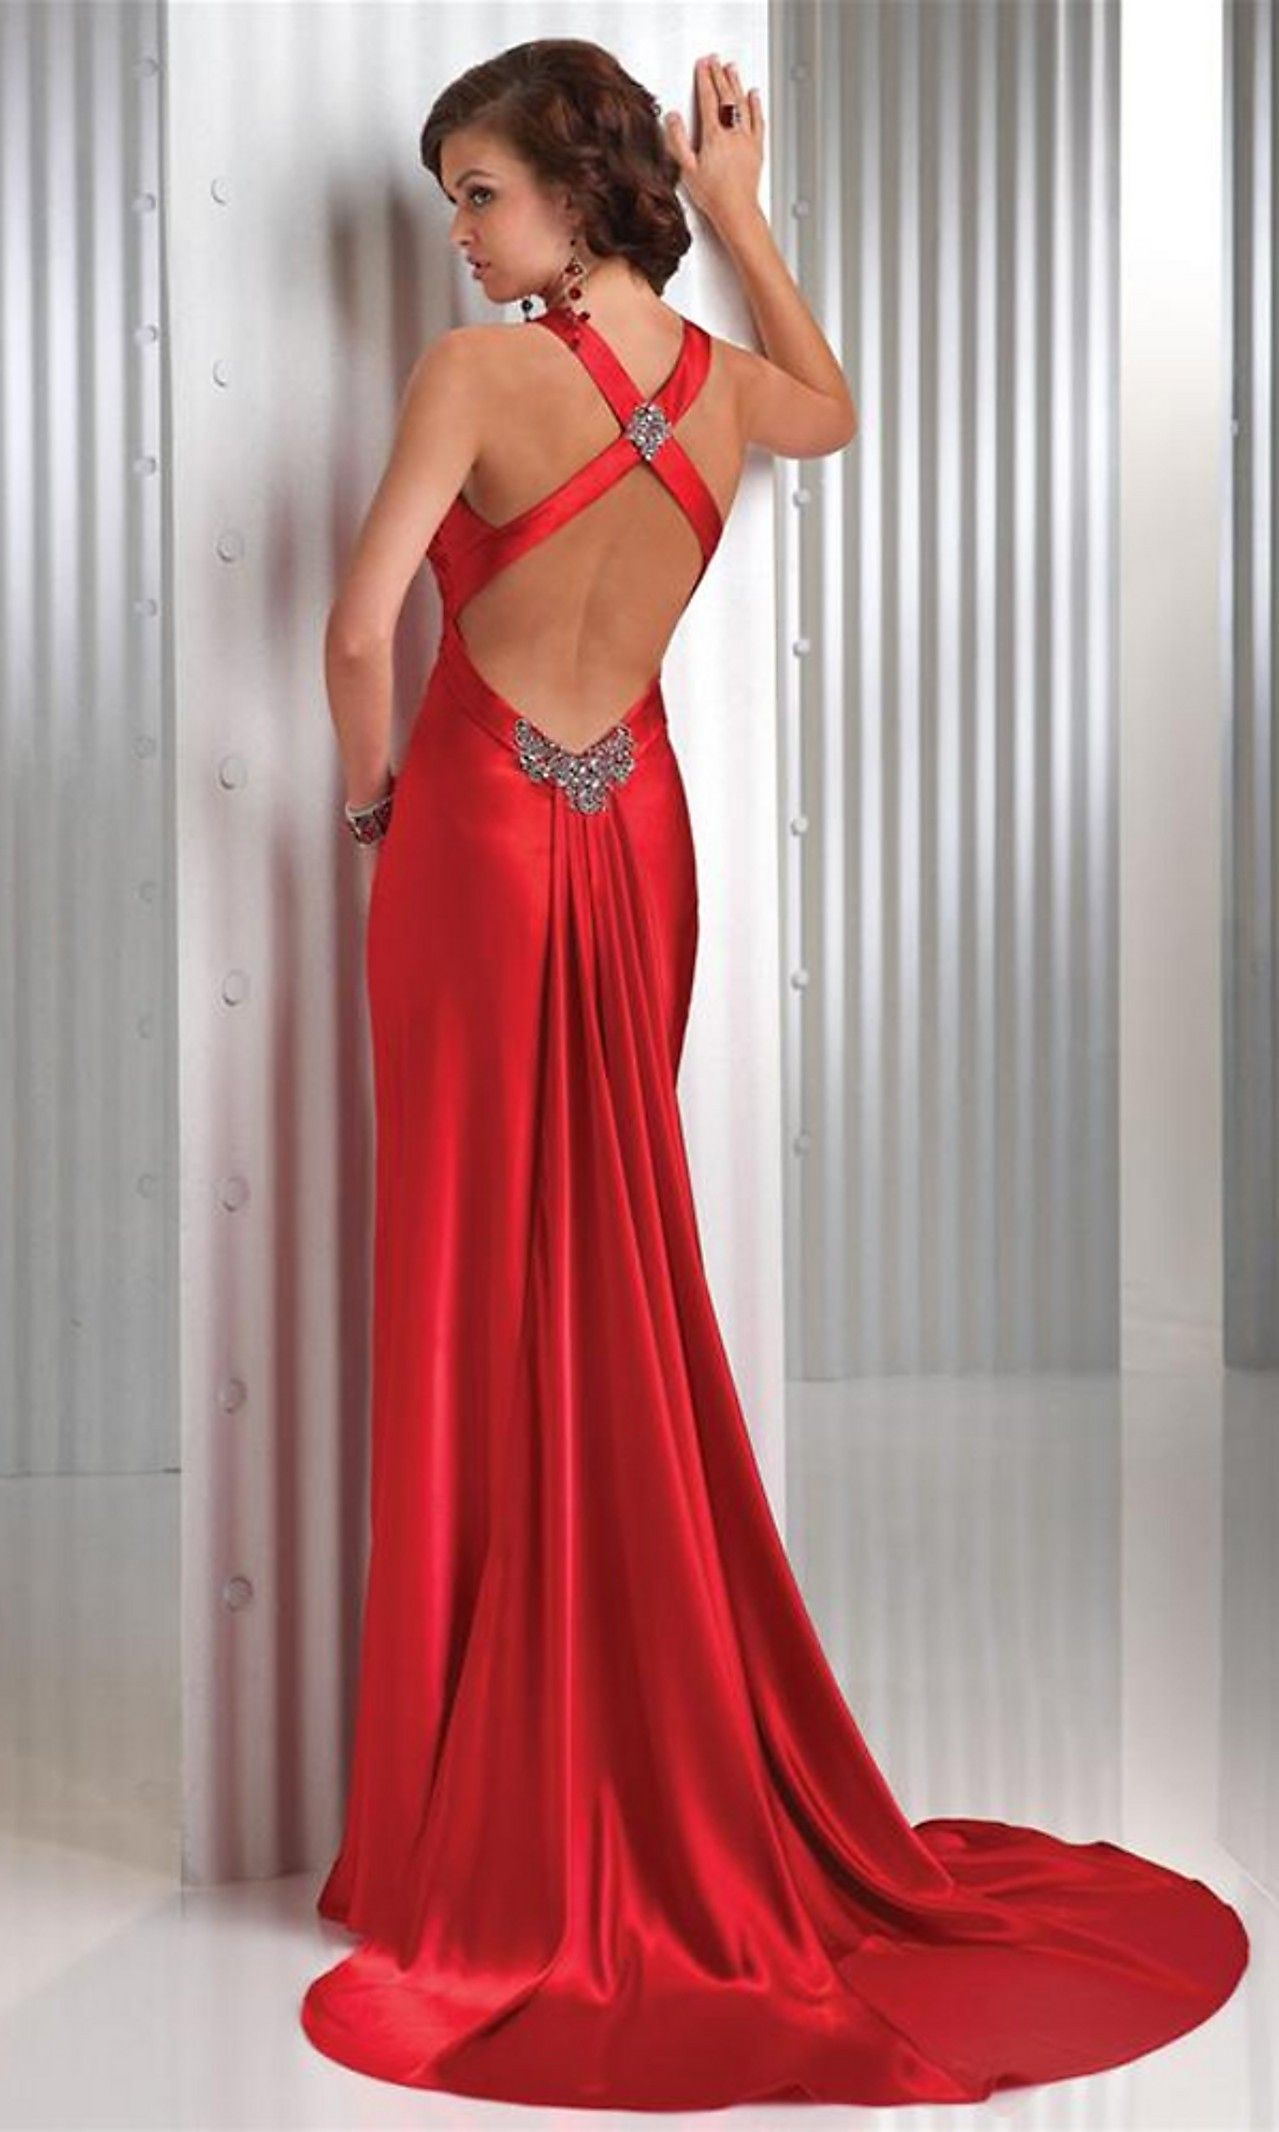 High Quality Sexy Red V Neck Floor Length Evening Gown Evening Dress Prom Dress 1